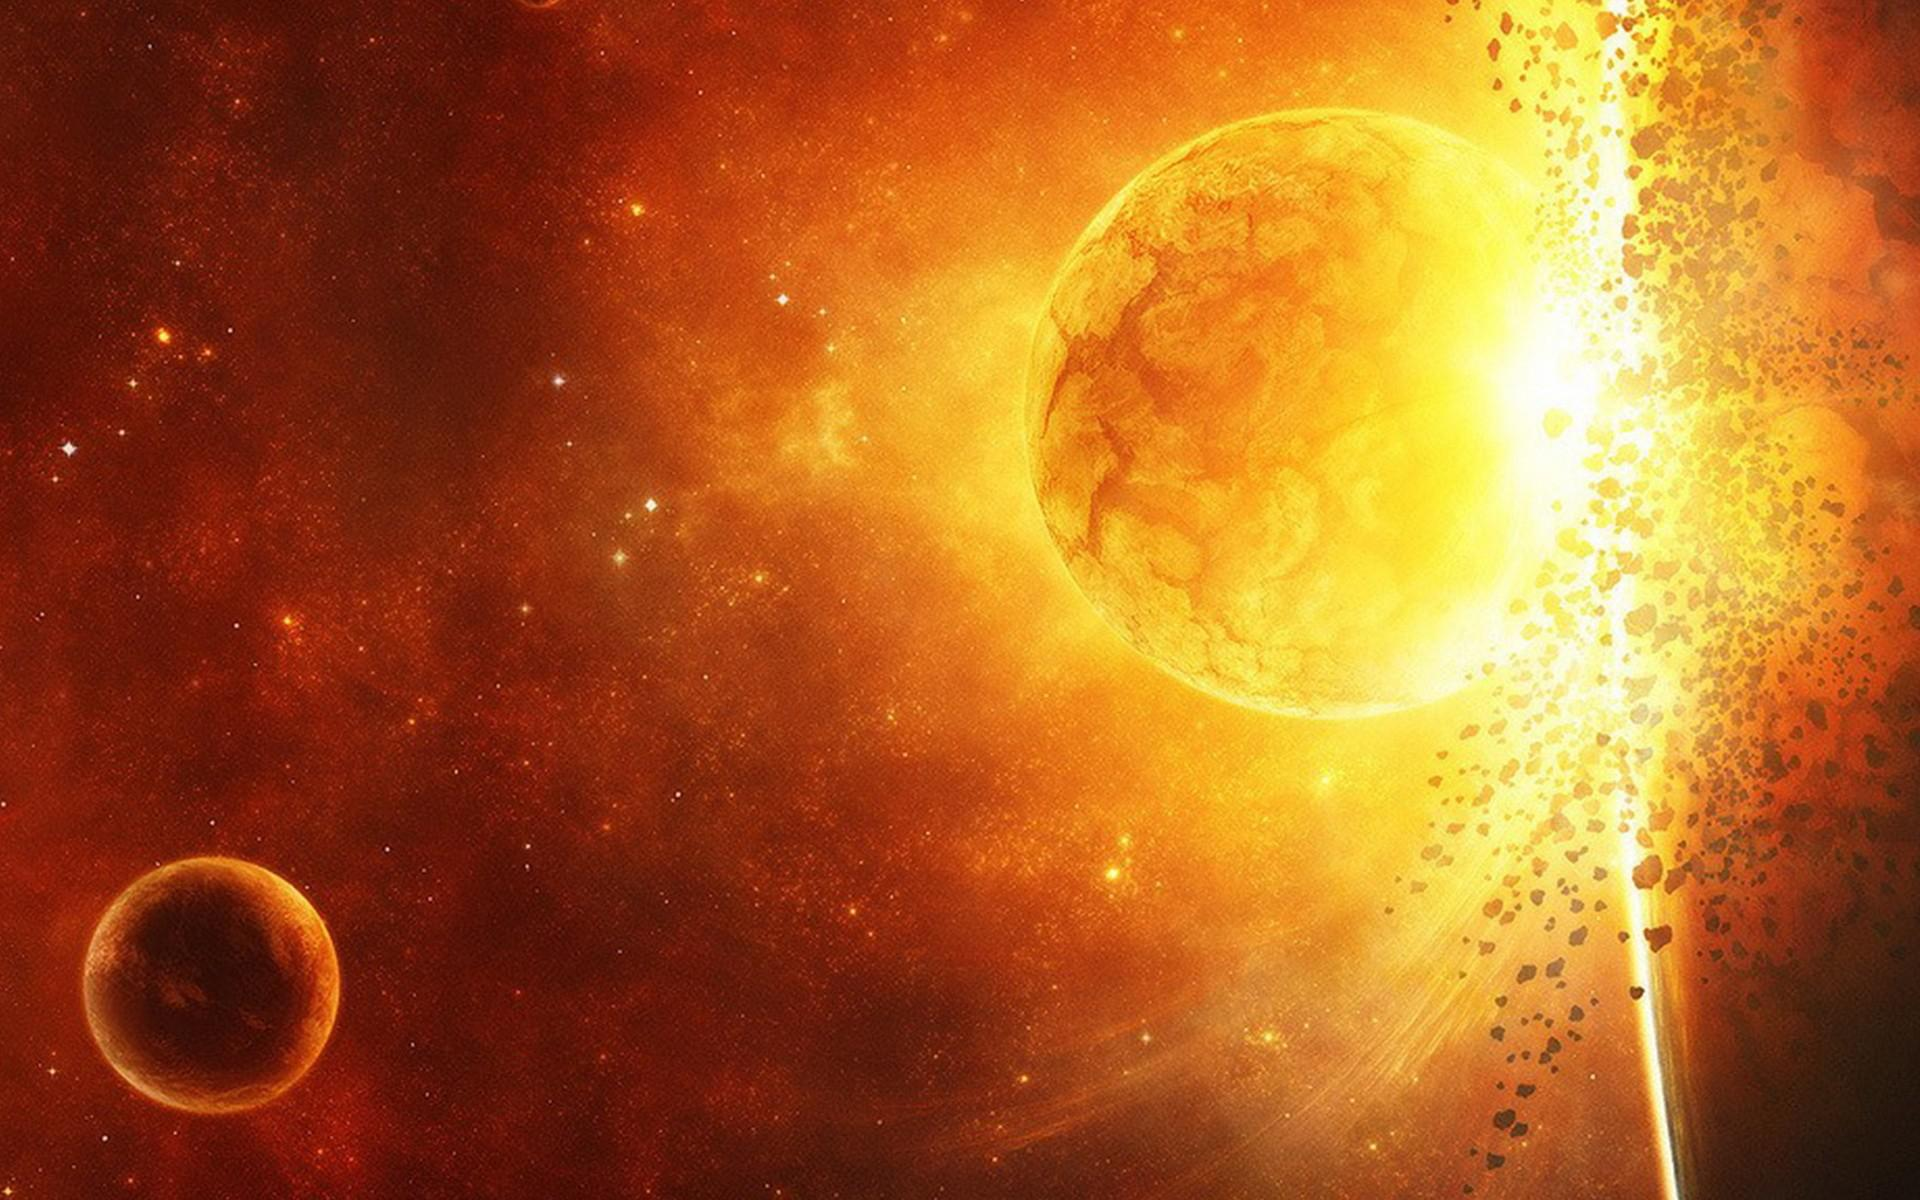 New Year 2014 Hd Wallpapers Hd Outer Space Stars Planets Catastrophe Explosion High